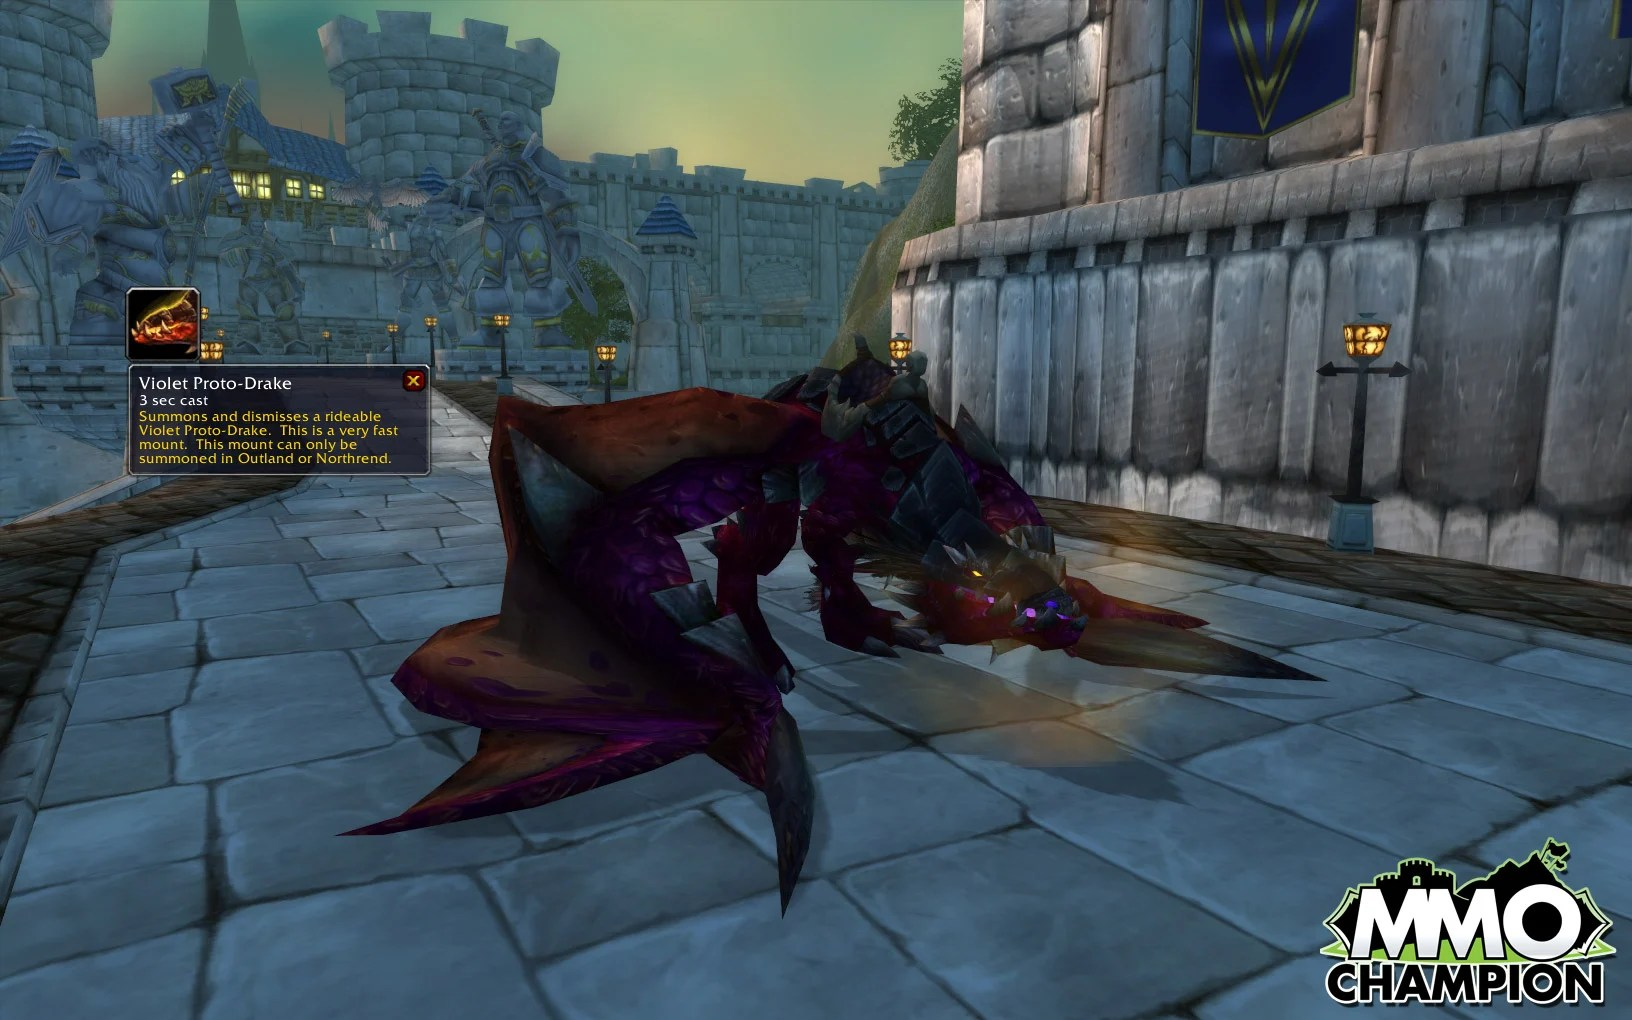 The Elusive Proto-Drake, in Purple flavor